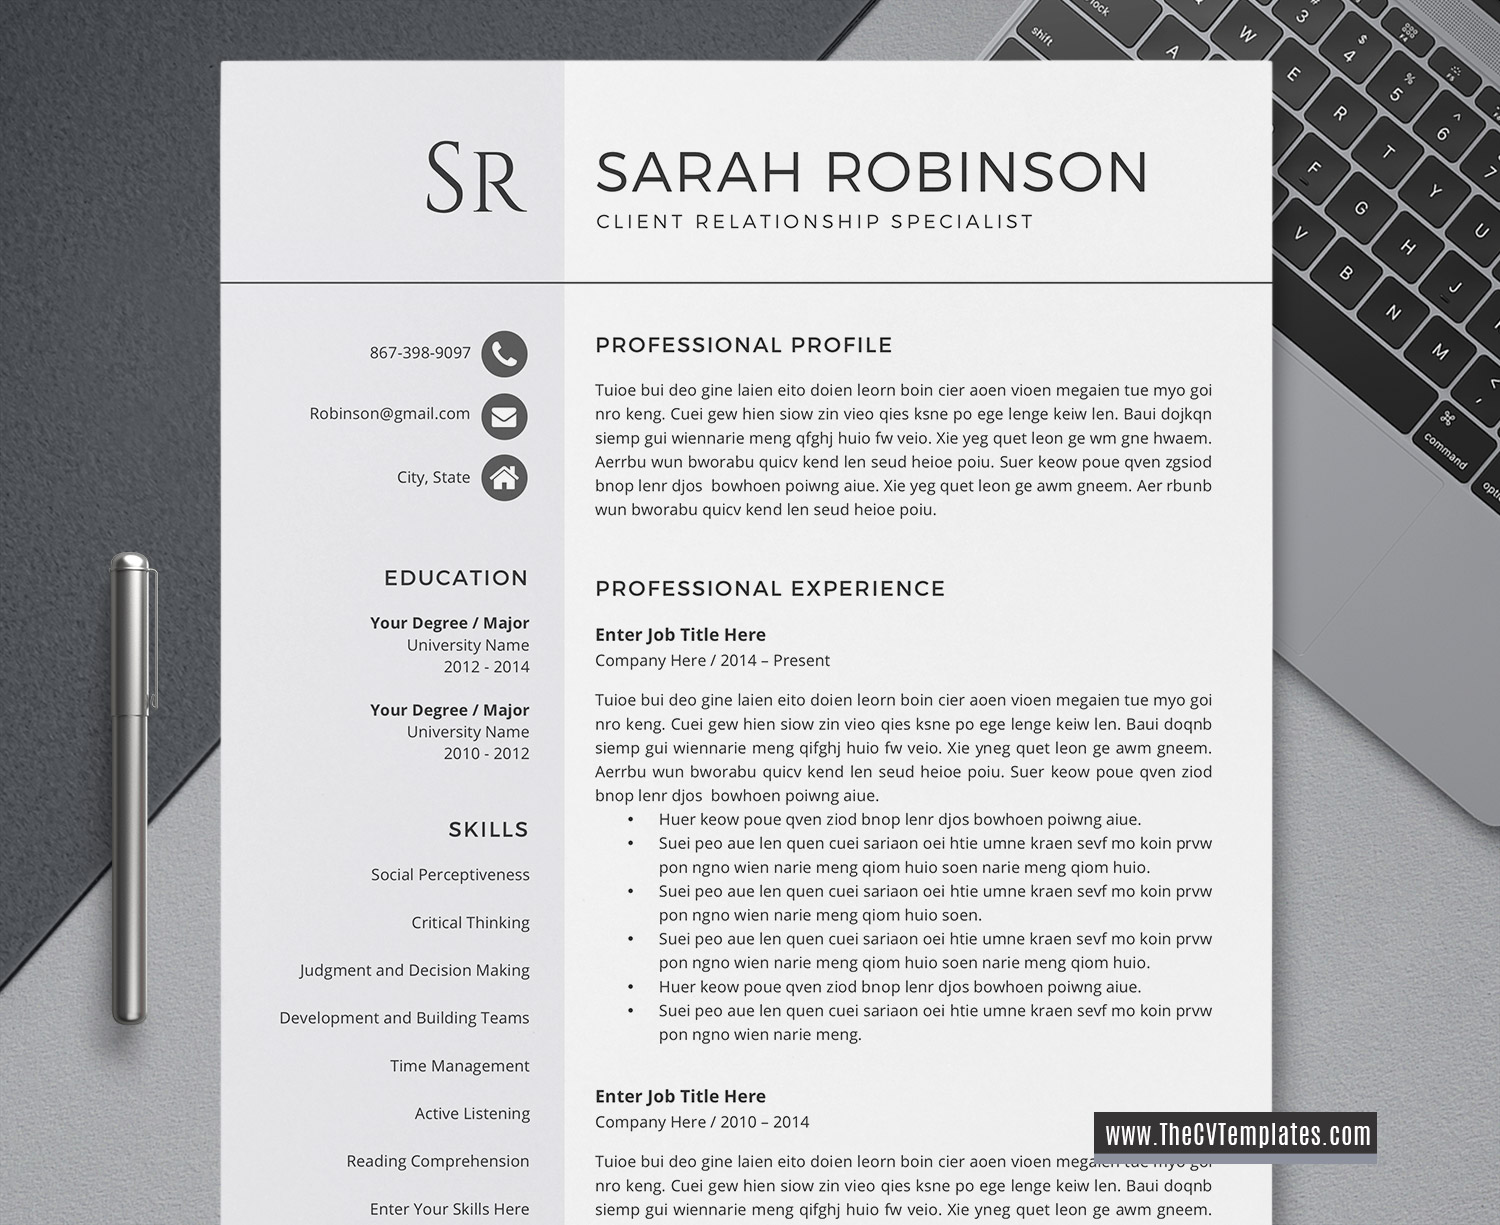 Minimalist Cv Template For Ms Word Simple Cv Layout Basic Resume Professional Resume 1 3 Page Resume Clean Resume For Job Application Printable Curriculum Vitae Template Thecvtemplates Com